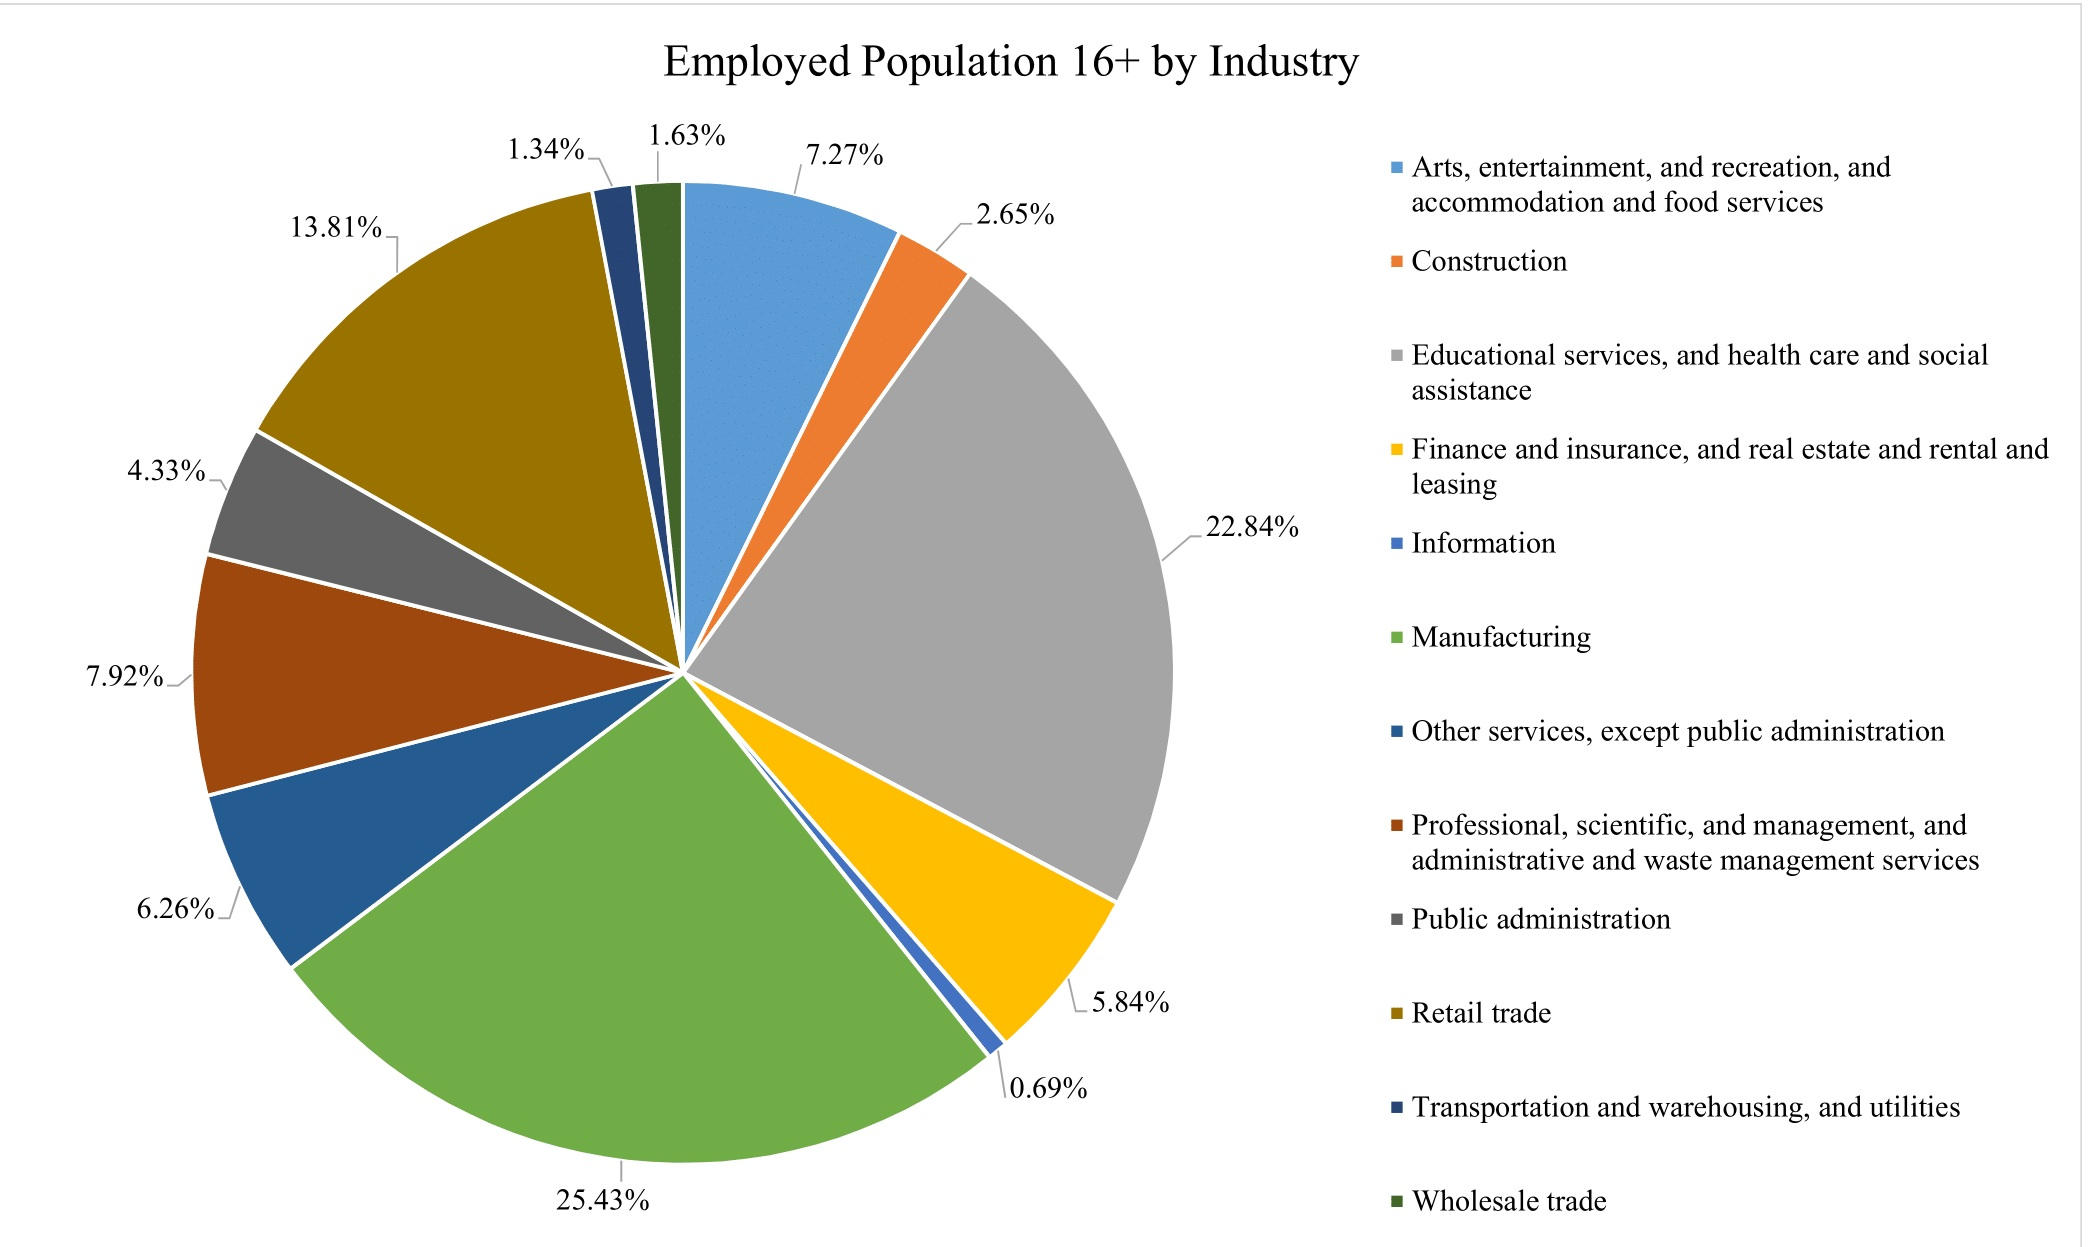 Of the 1028 individuals that work in manufacturing, over 50% are in management positions. Of the 923 individuals in educational services, healthcare and social assistance, over 80% are in management positions. Of the 558 that make up the retail trade segment, over 80% are in sales positions.